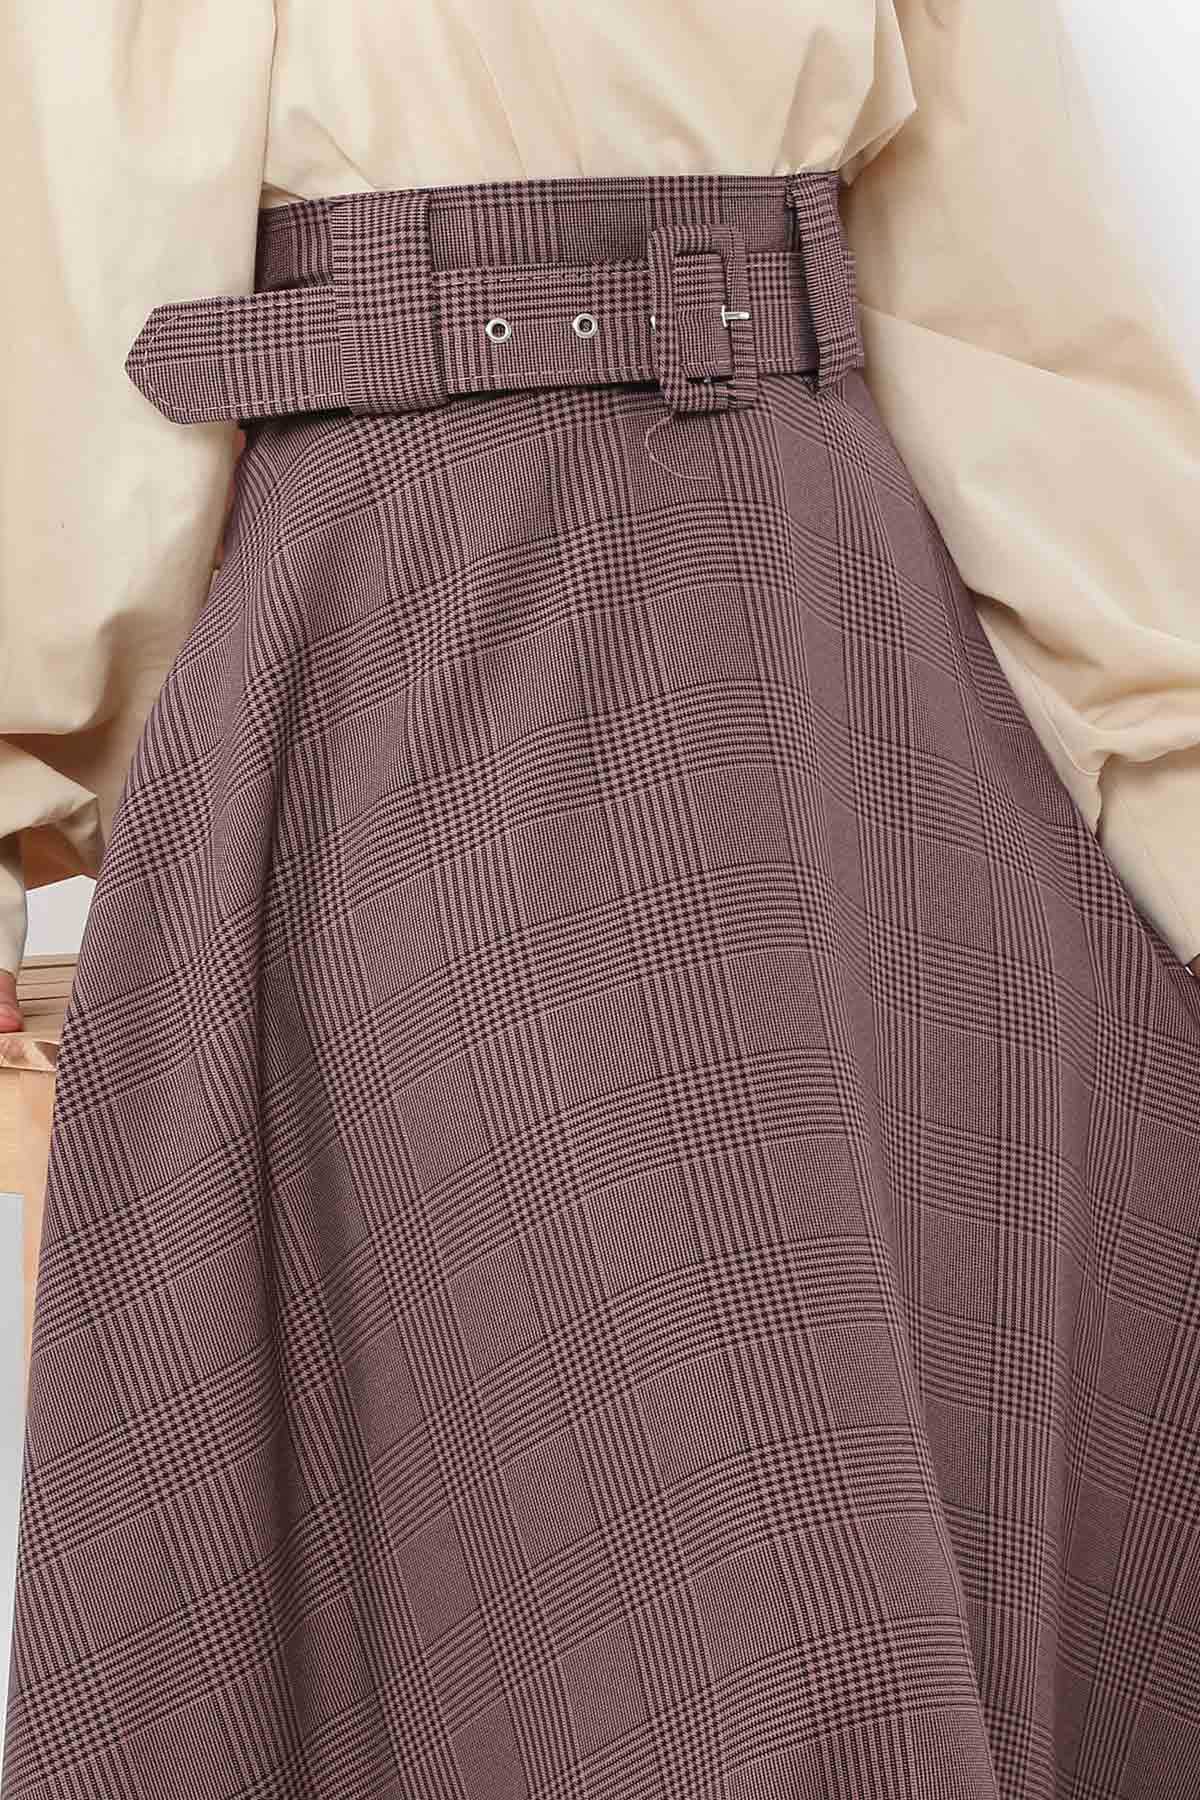 Belted Plaid Patterned Mevlana Skirt TSD0354 Dried Rose